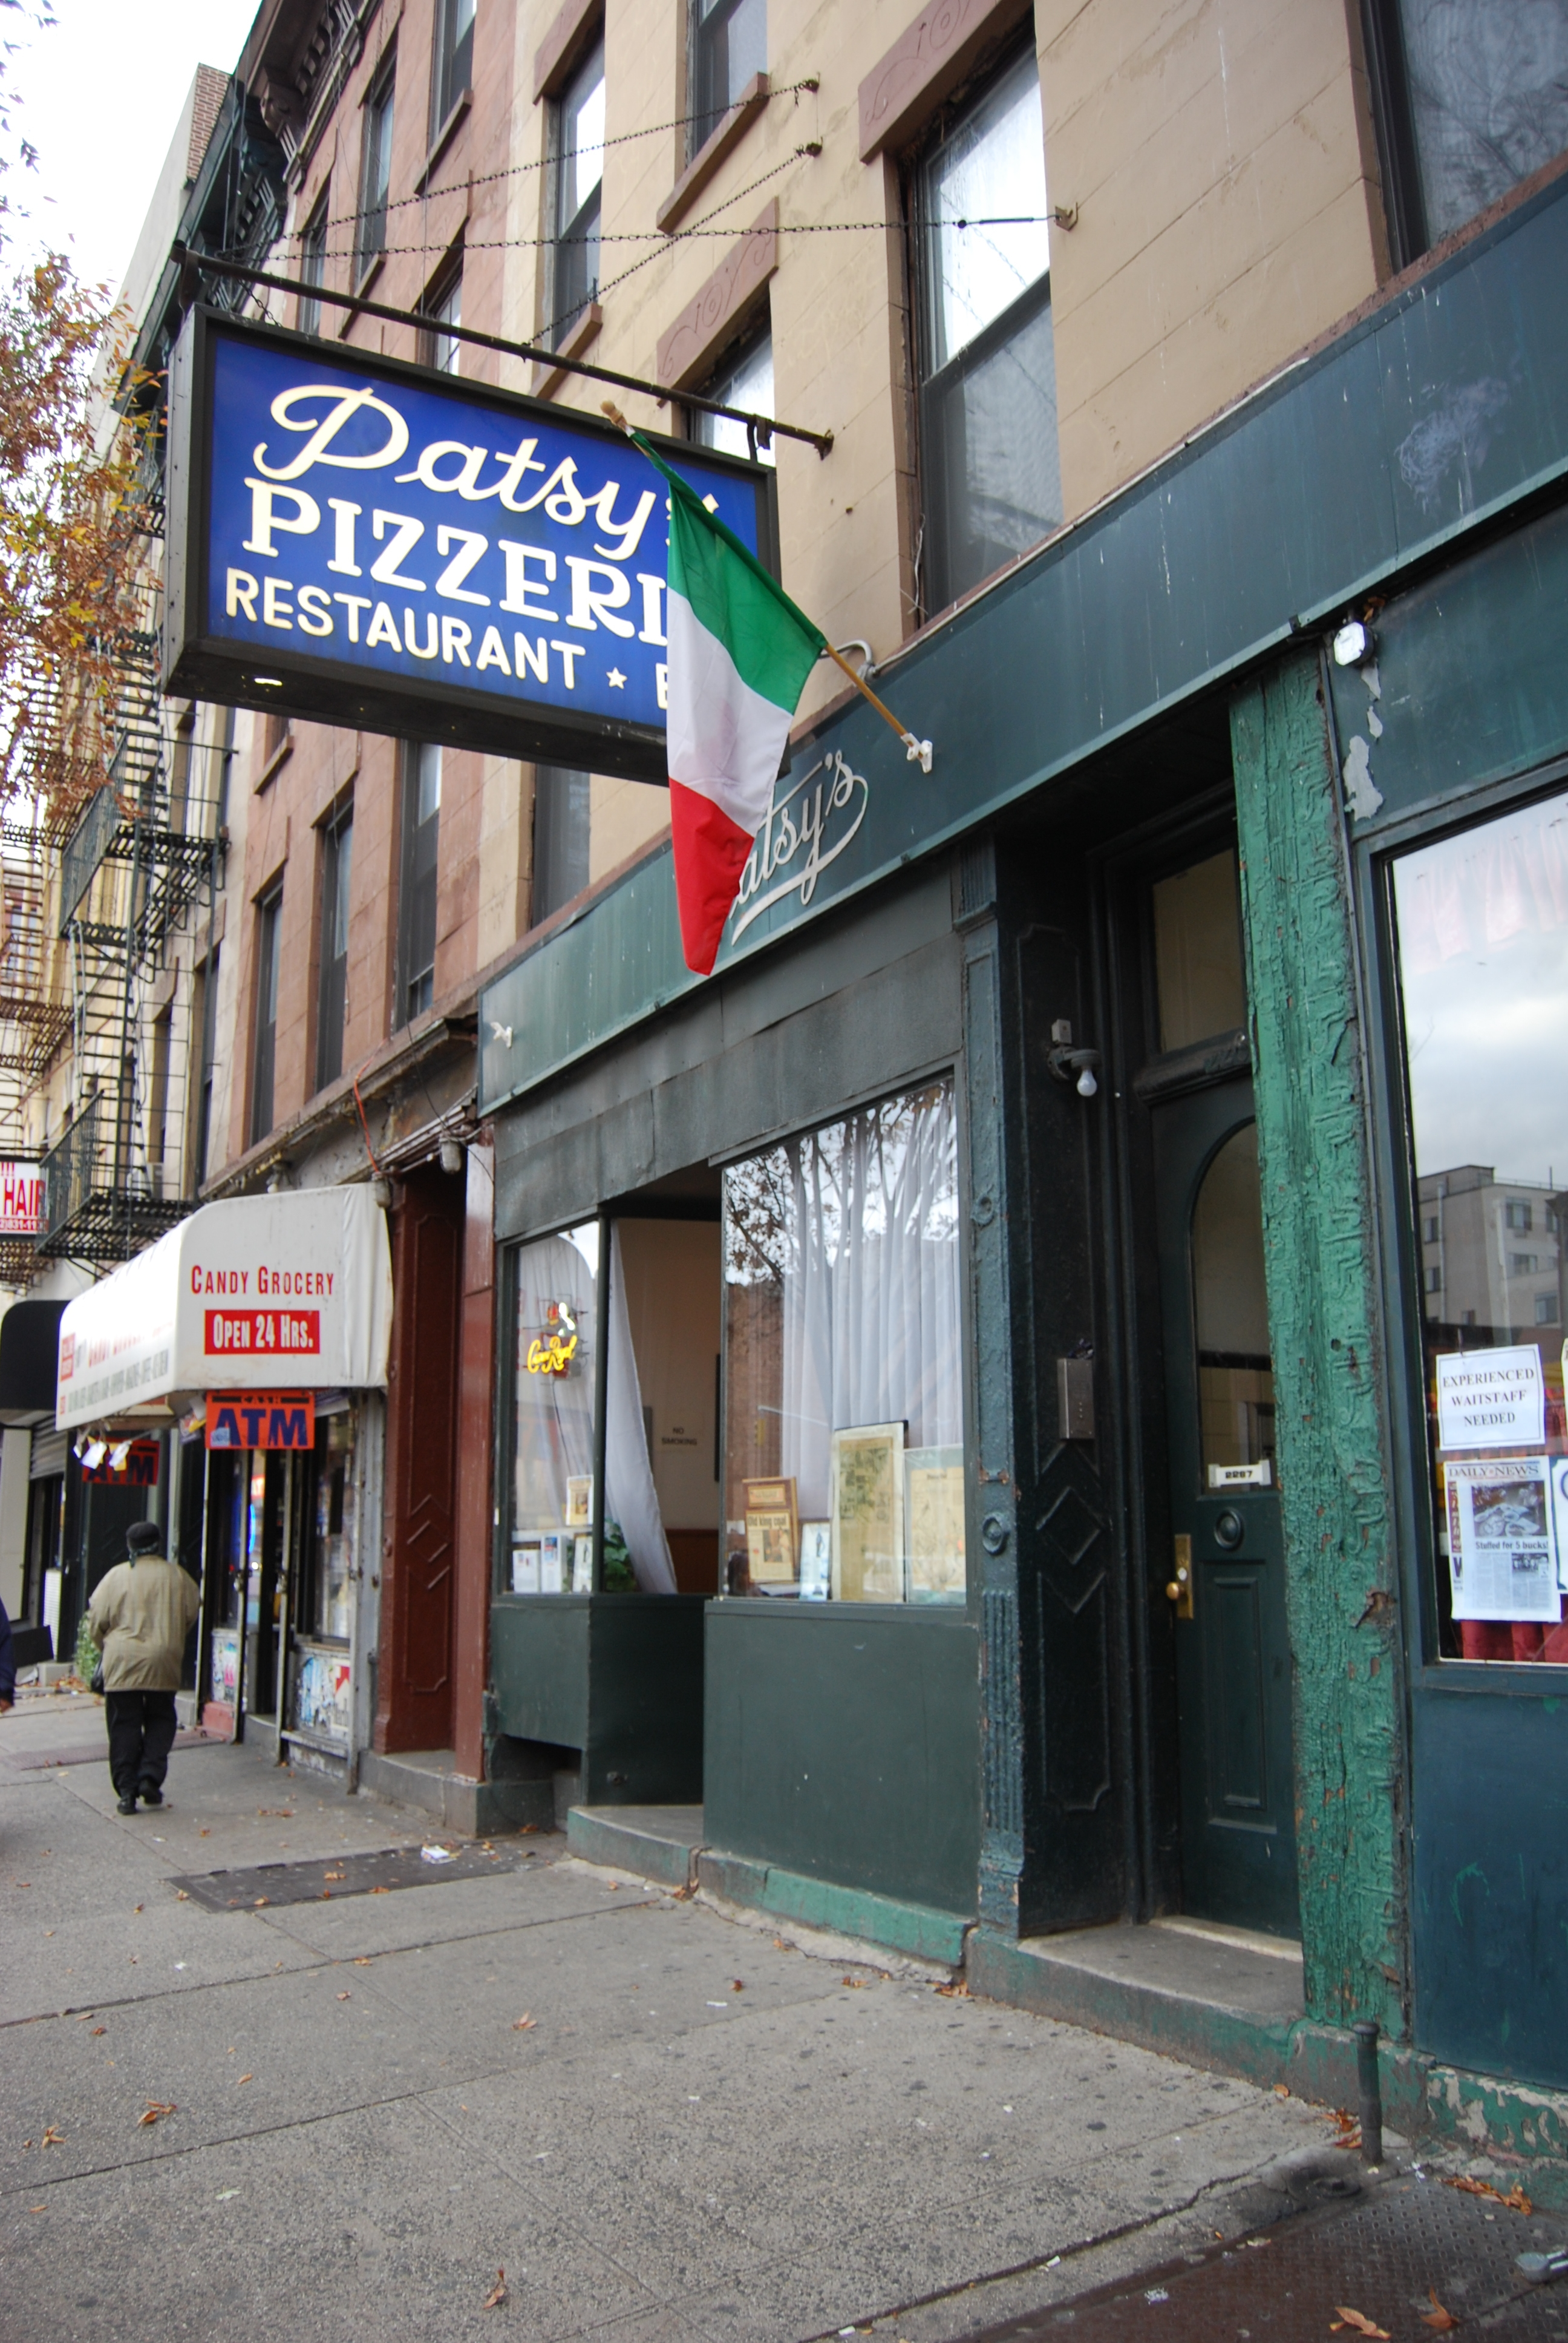 By Paul Lowry from New York, EEUU de A (Patsy's Pizzeria) [CC BY 2.0 (https://creativecommons.org/licenses/by/2.0)], via Wikimedia Commons